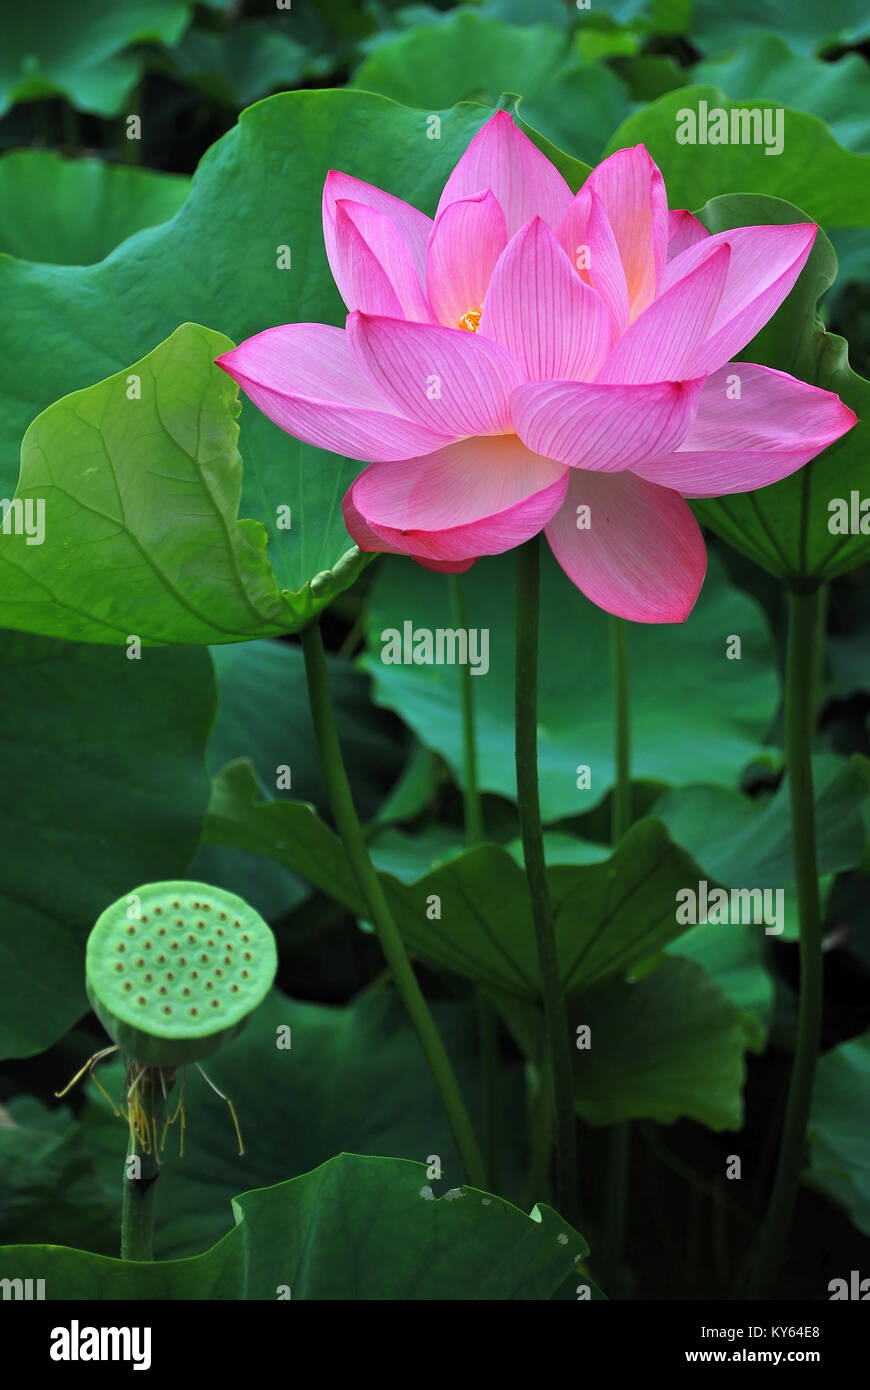 Flower Plant Lotus Buddhist Purity Stock Photos Flower Plant Lotus